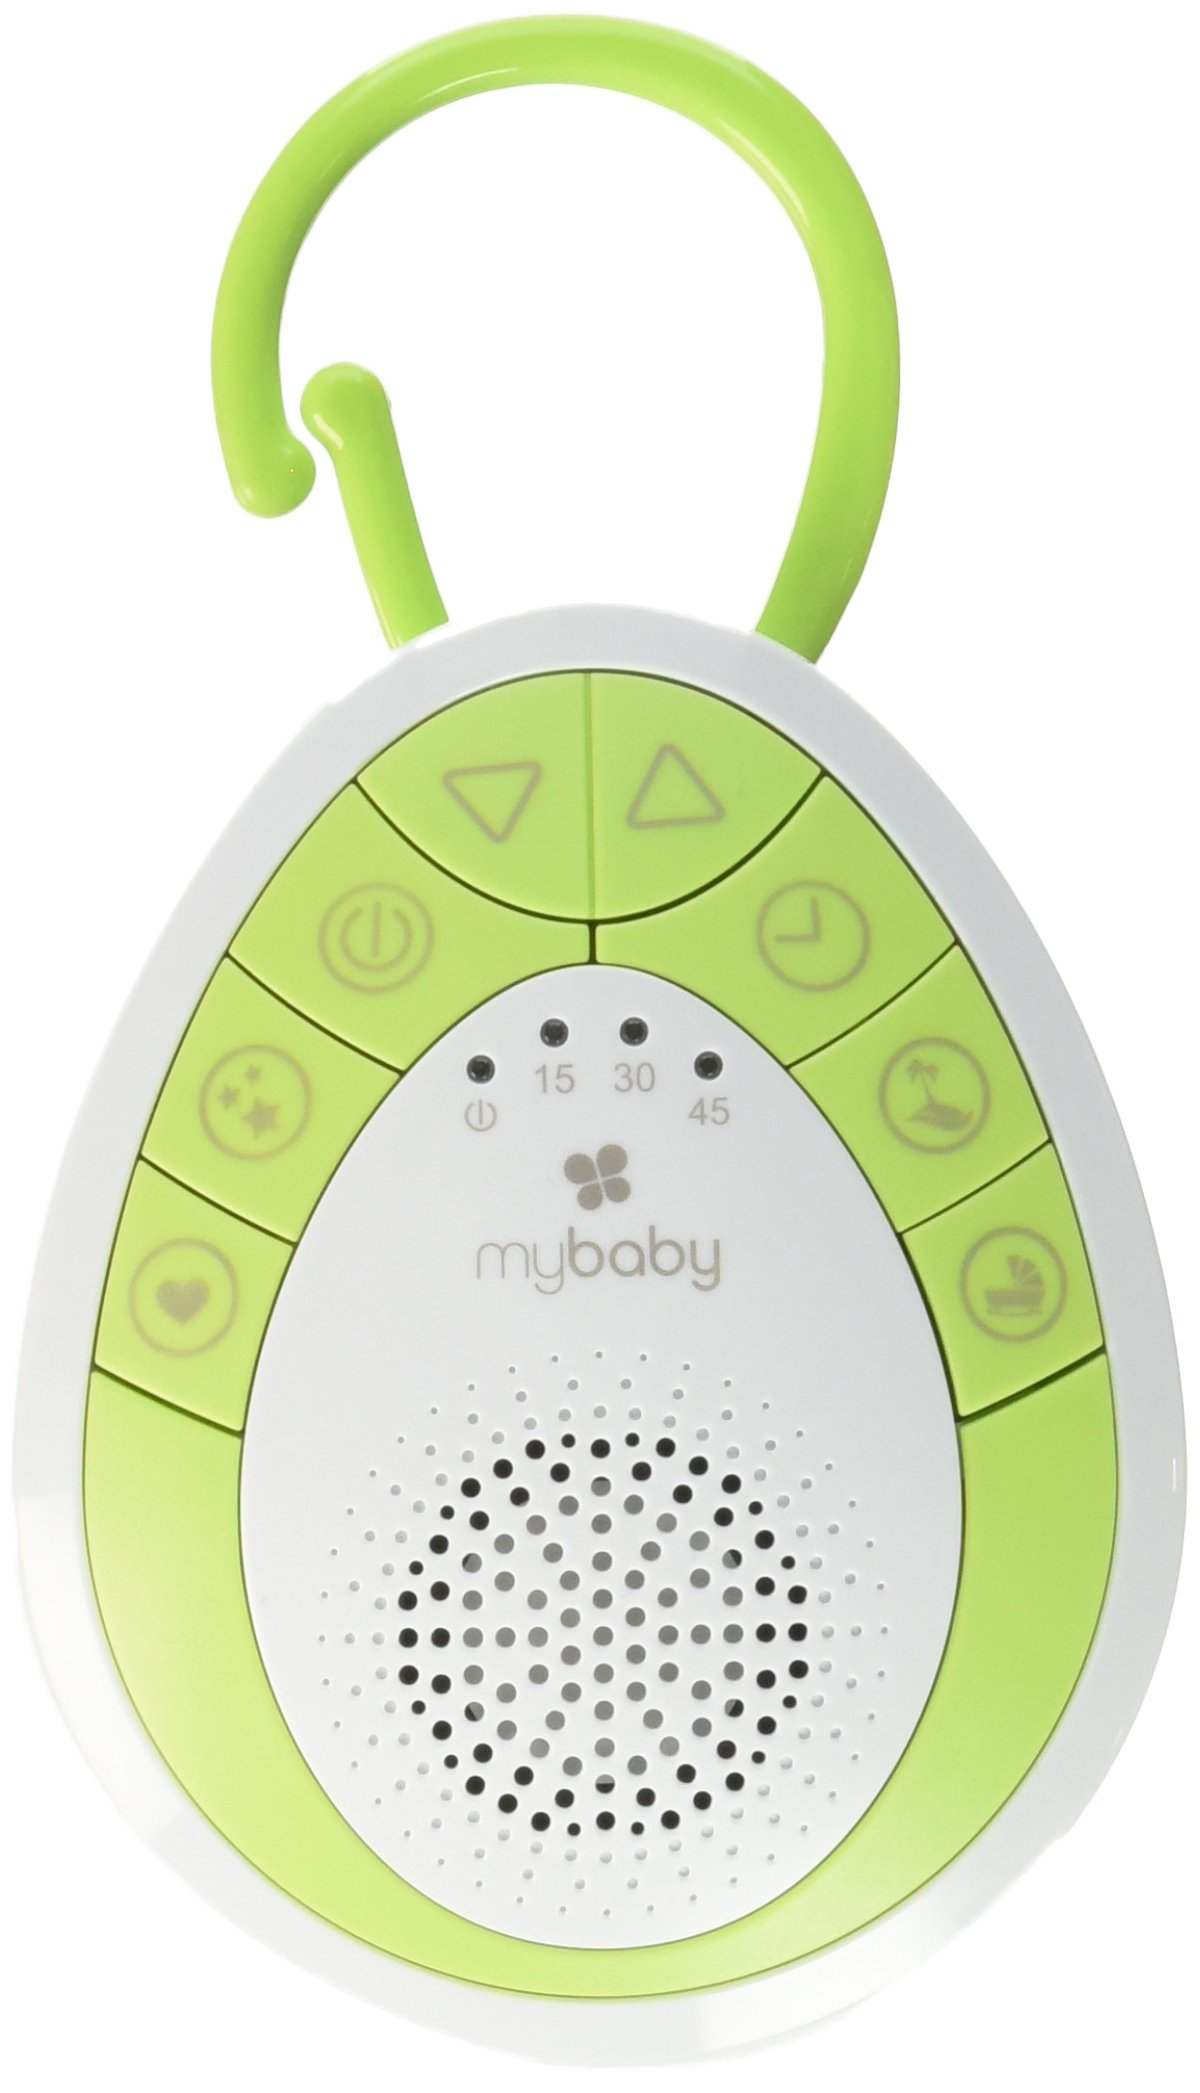 myBaby Soundspa On‐the‐Go, Plays 4 Soothing Sounds, Includes Clip For Strollers, Diaper Bags, Car Seats, Cribs, Auto-off Timer, Lightweight, Perfect for Busy Moms, MYB‐S110